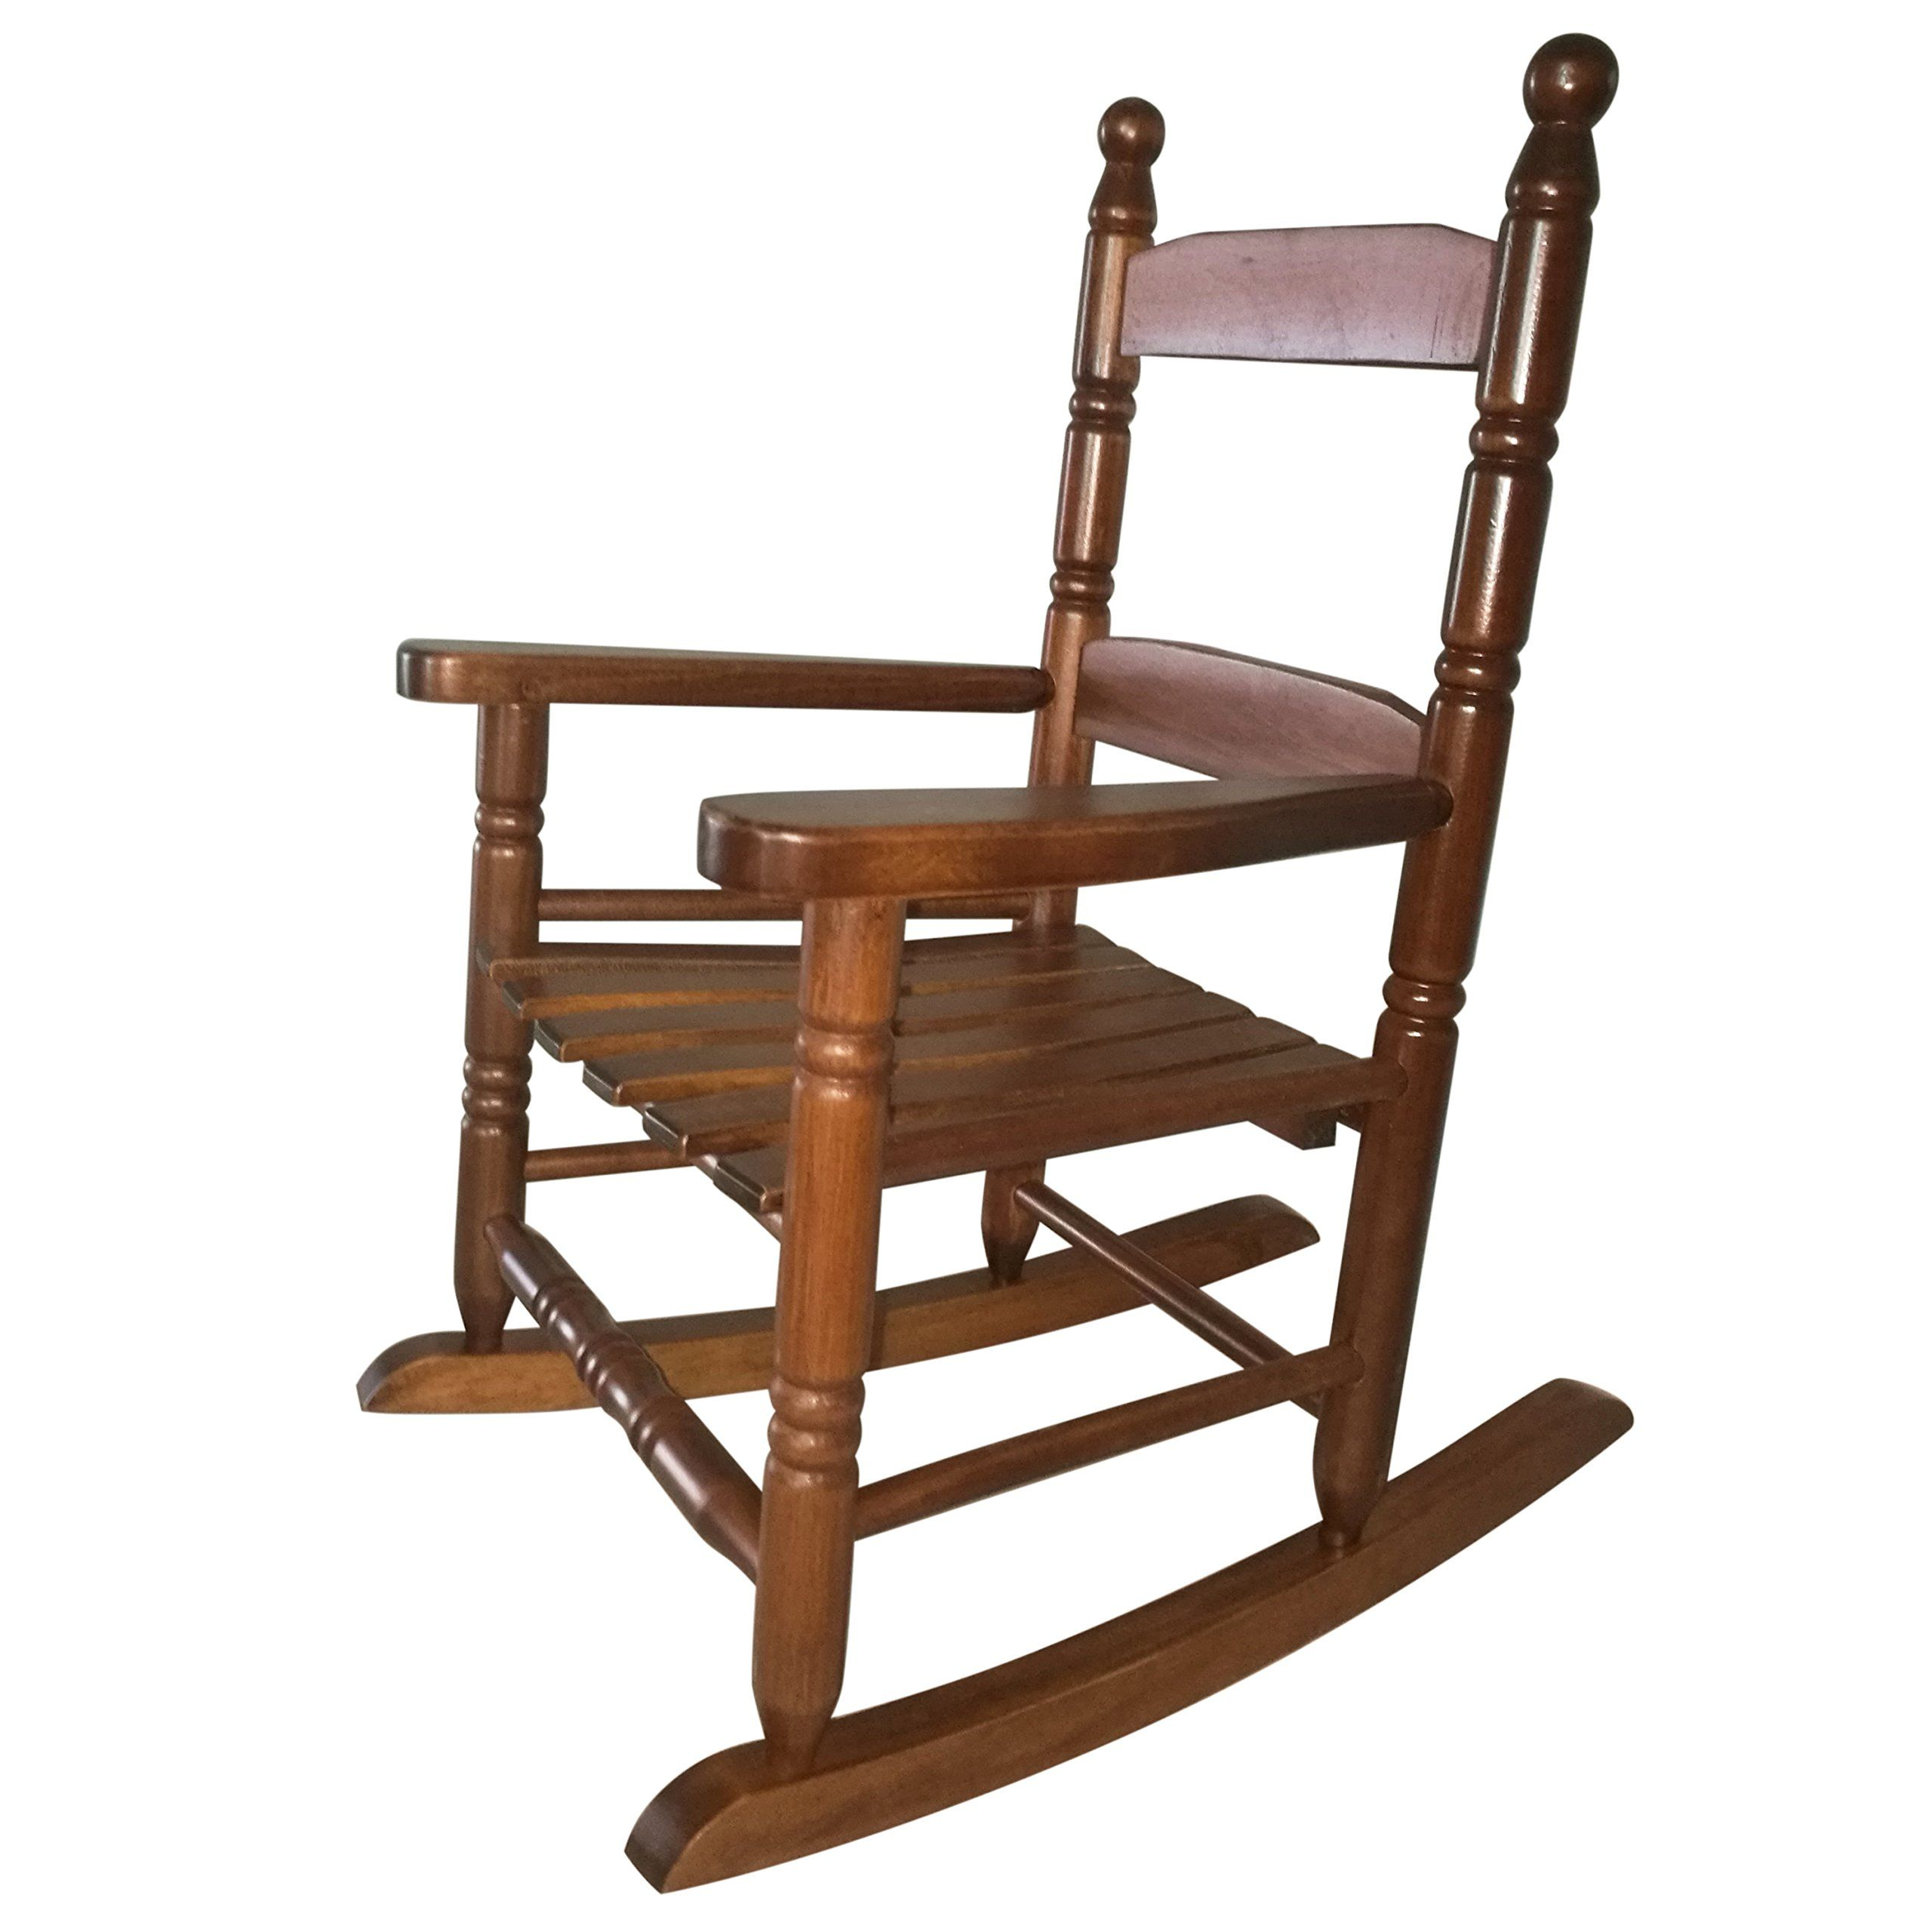 PatioFestival Wood Adirondack Lounger Chair